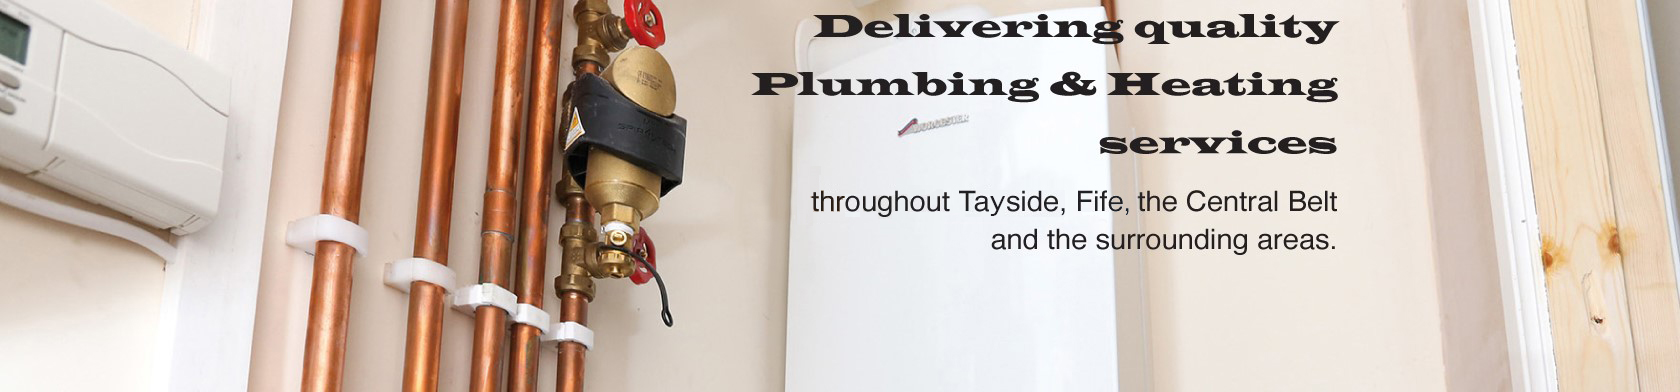 Plumbing & Heating Services Perth